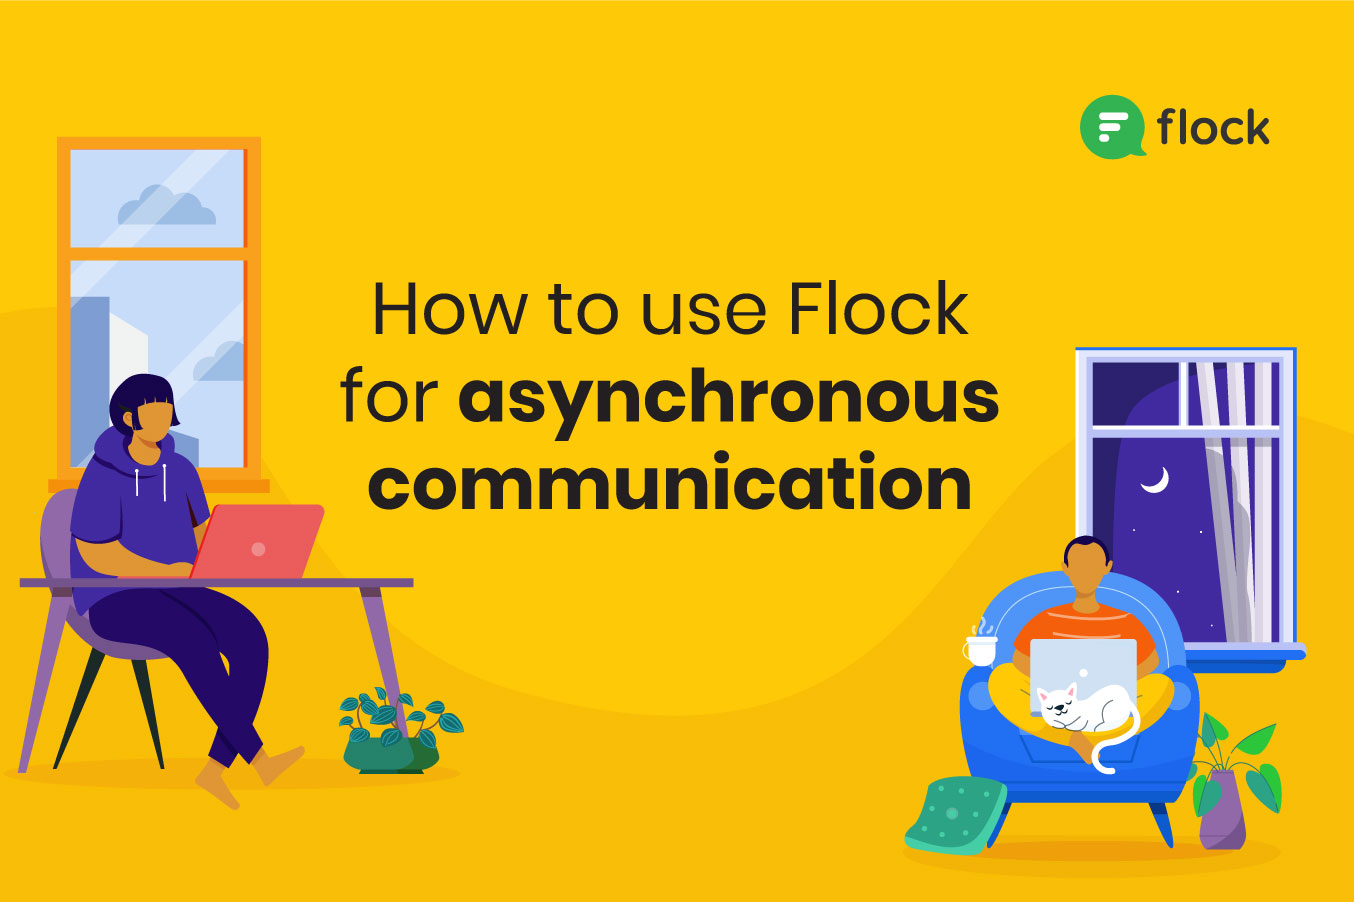 Flock for asynchronous communication